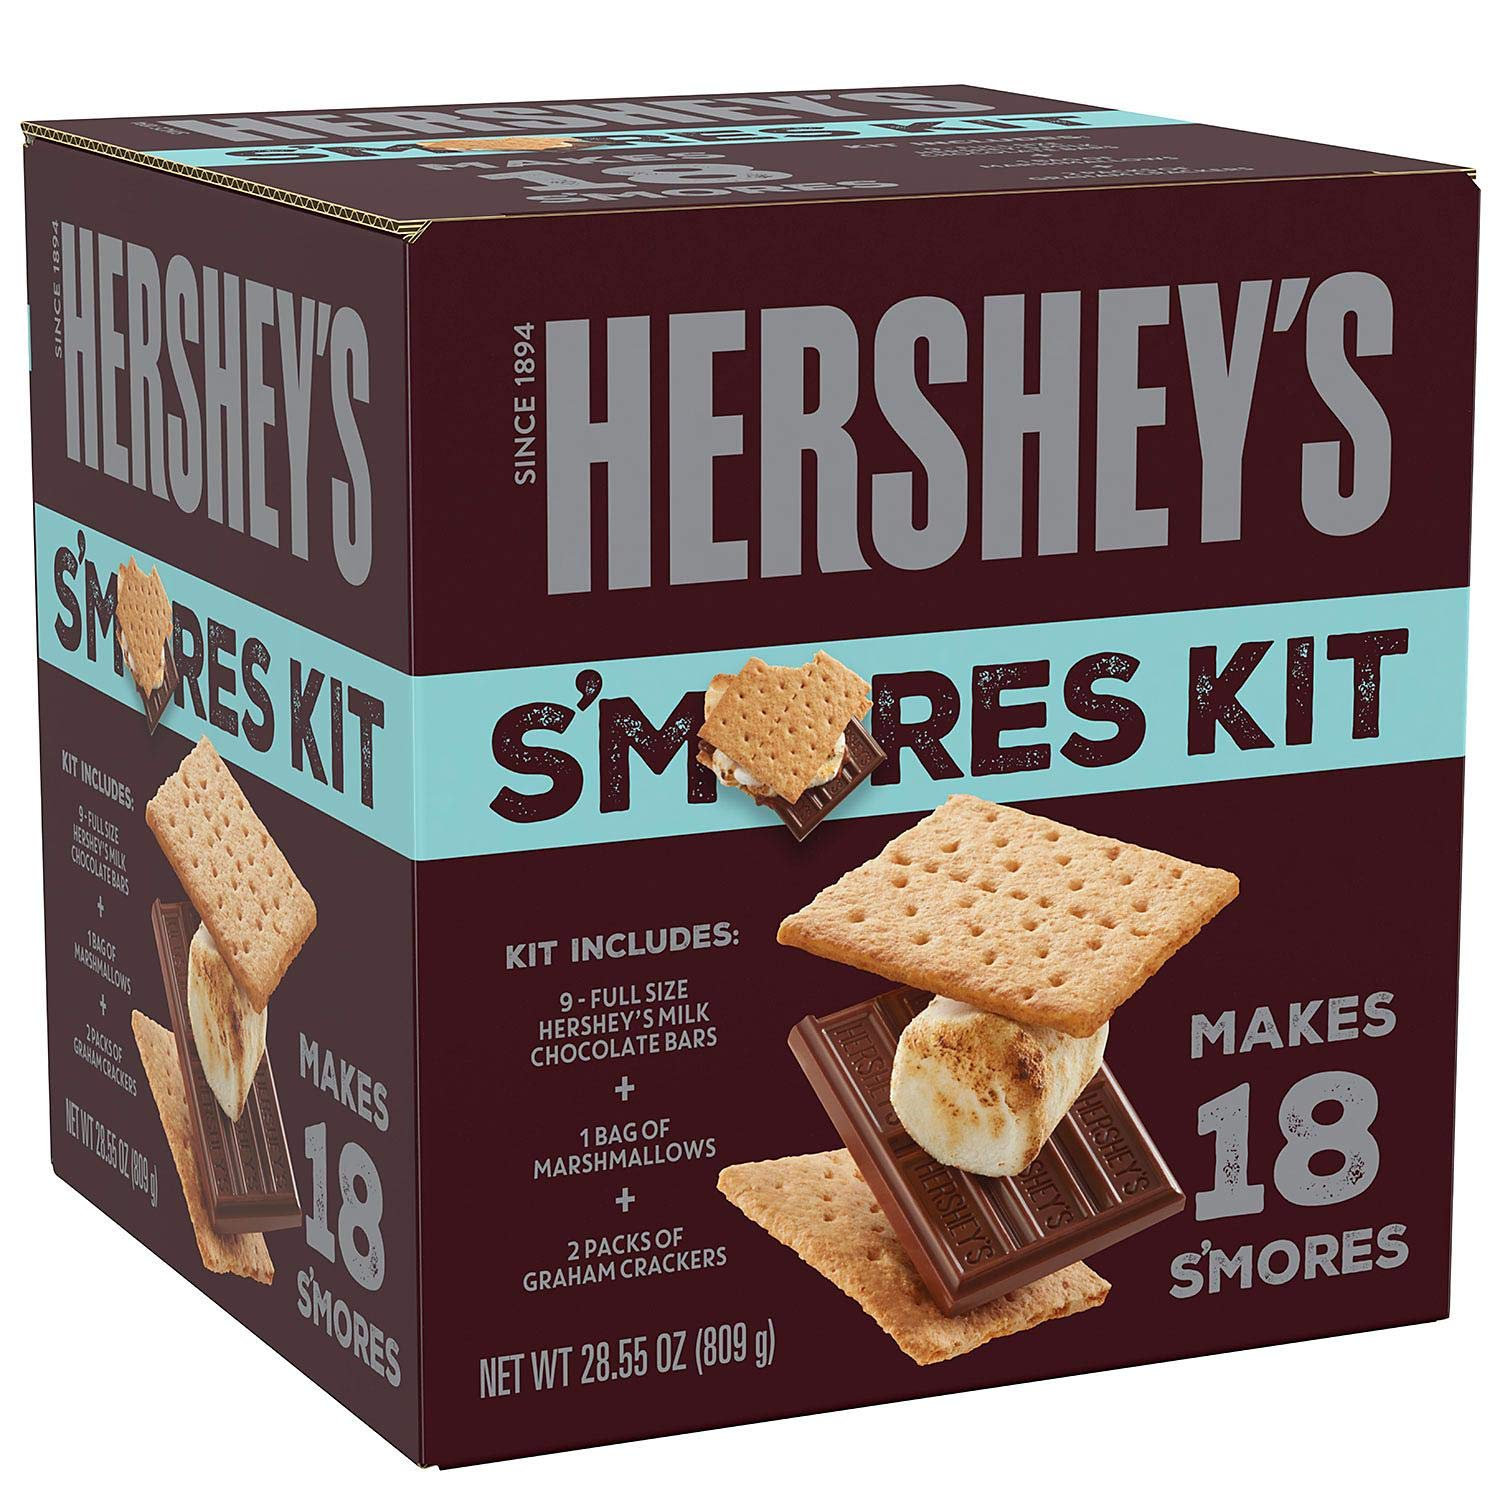 Hershey's S'mores Kit 18 S'mores Net Wt 28.55 Oz